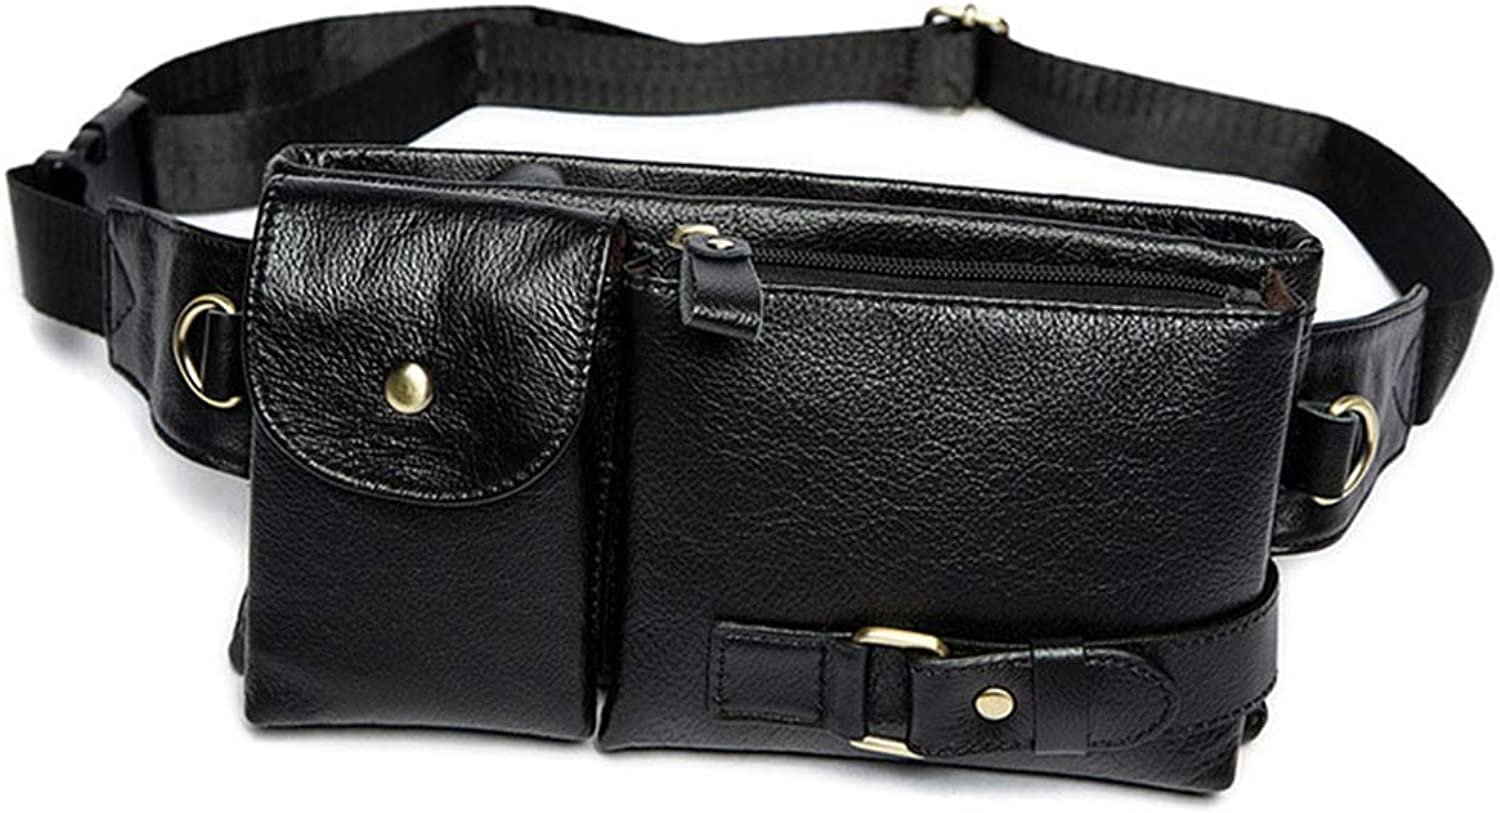 Travel Fanny Bag Waist Pack Unisex Leather Fanny Waist Pack Travel Casual Running Hiking Cycling Climbing Outdoor Sports Zipper Bum Bag Fanny Pack for Men Women (color   Black)